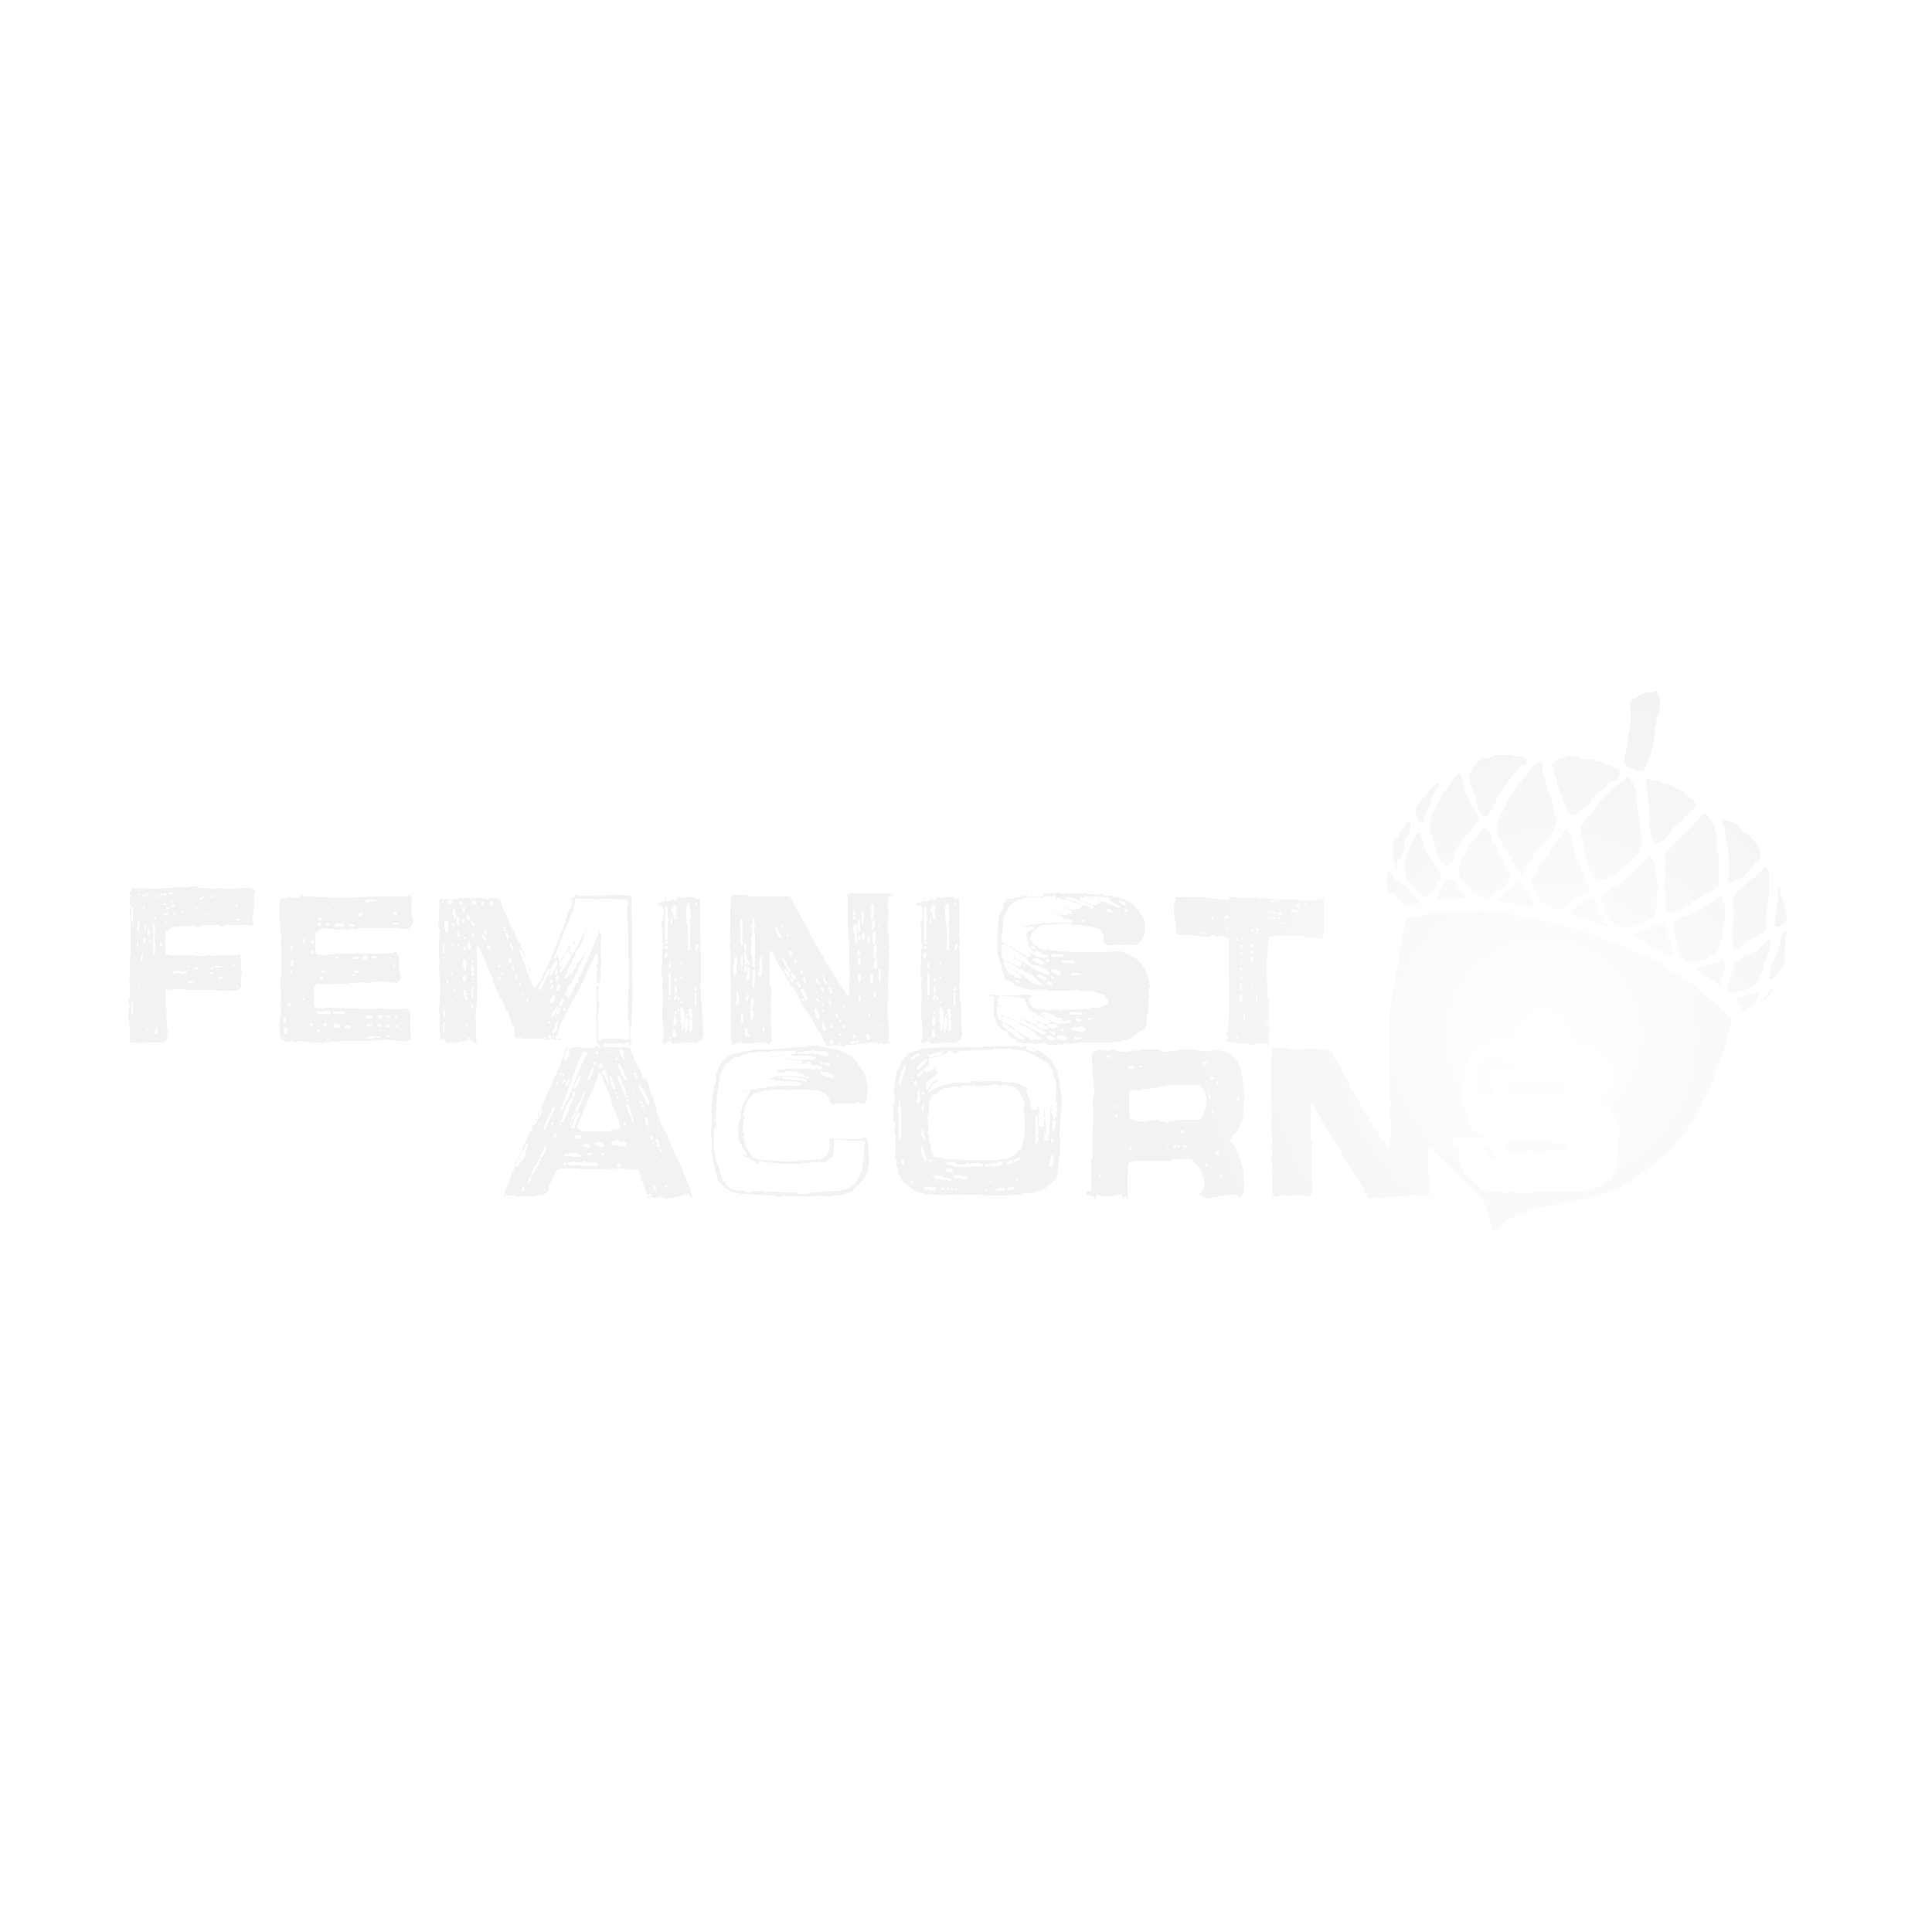 Selections from  Feminist Acorns:   Raised Right   Failure is Not an Option